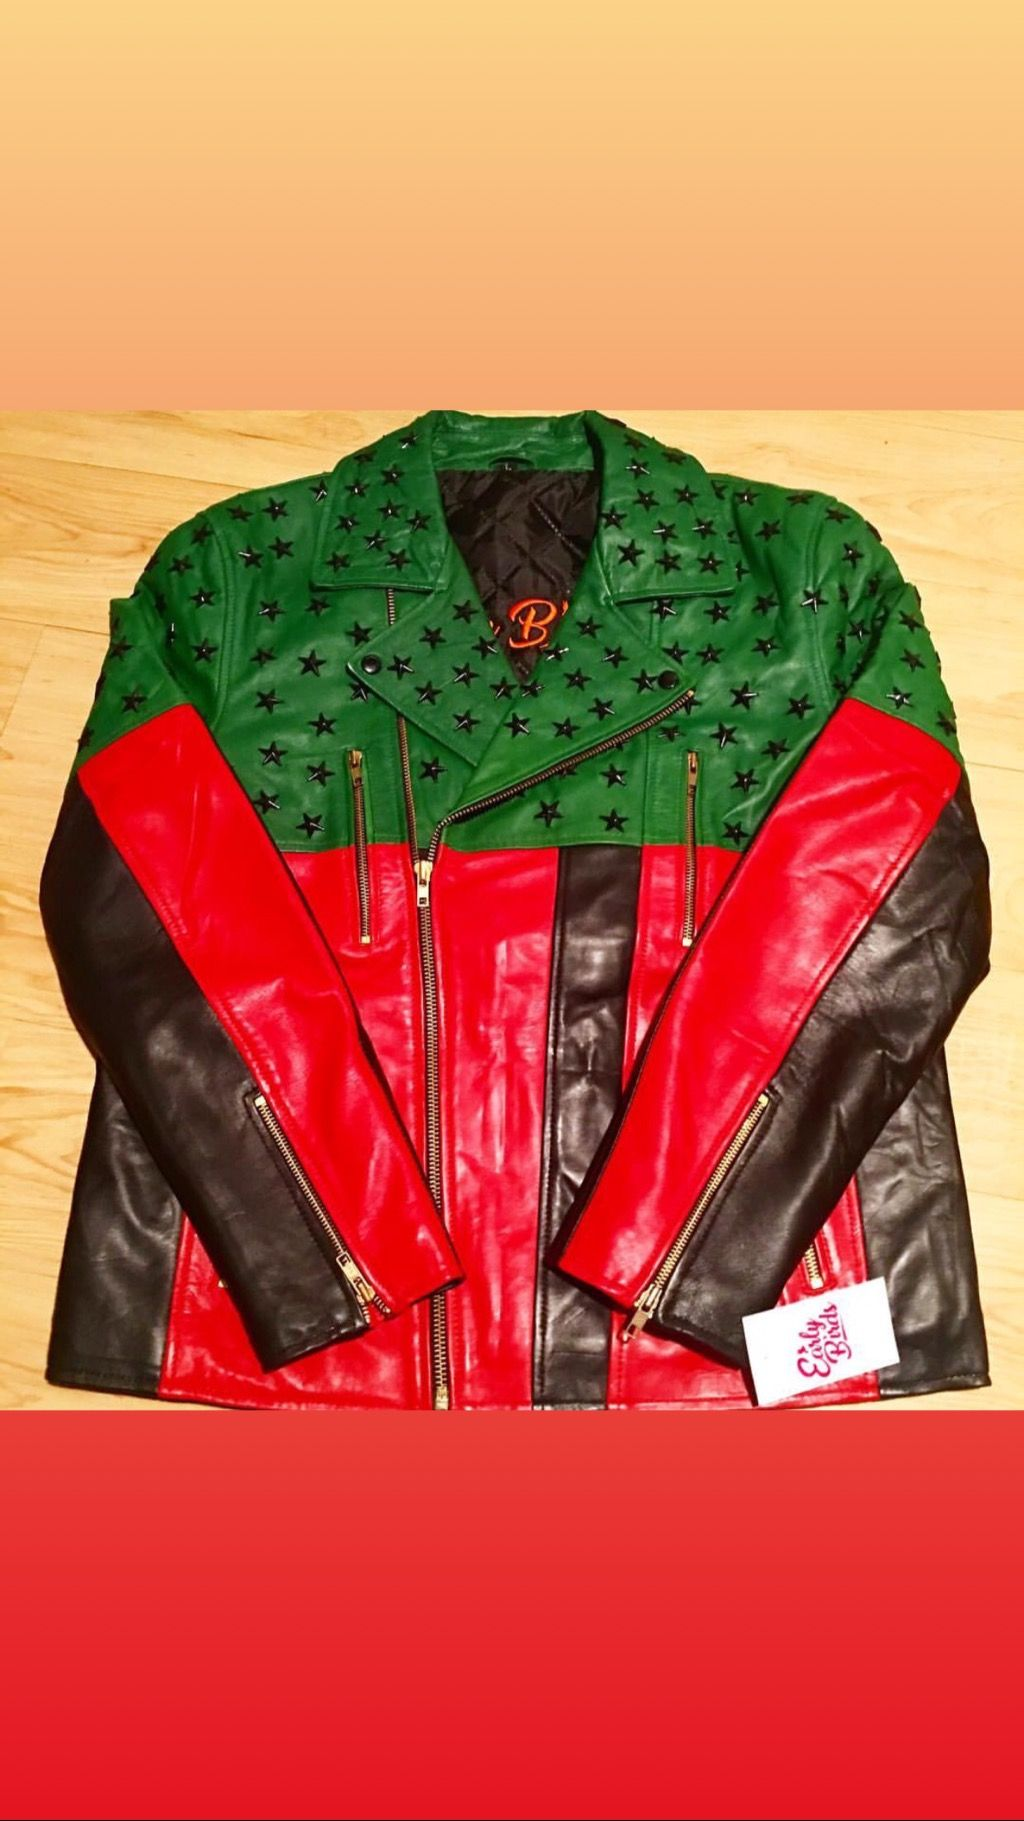 Pin By Early Birds On Mens Collections Leather Jacket Men Red Leather Jacket Men S Collection [ 1821 x 1024 Pixel ]